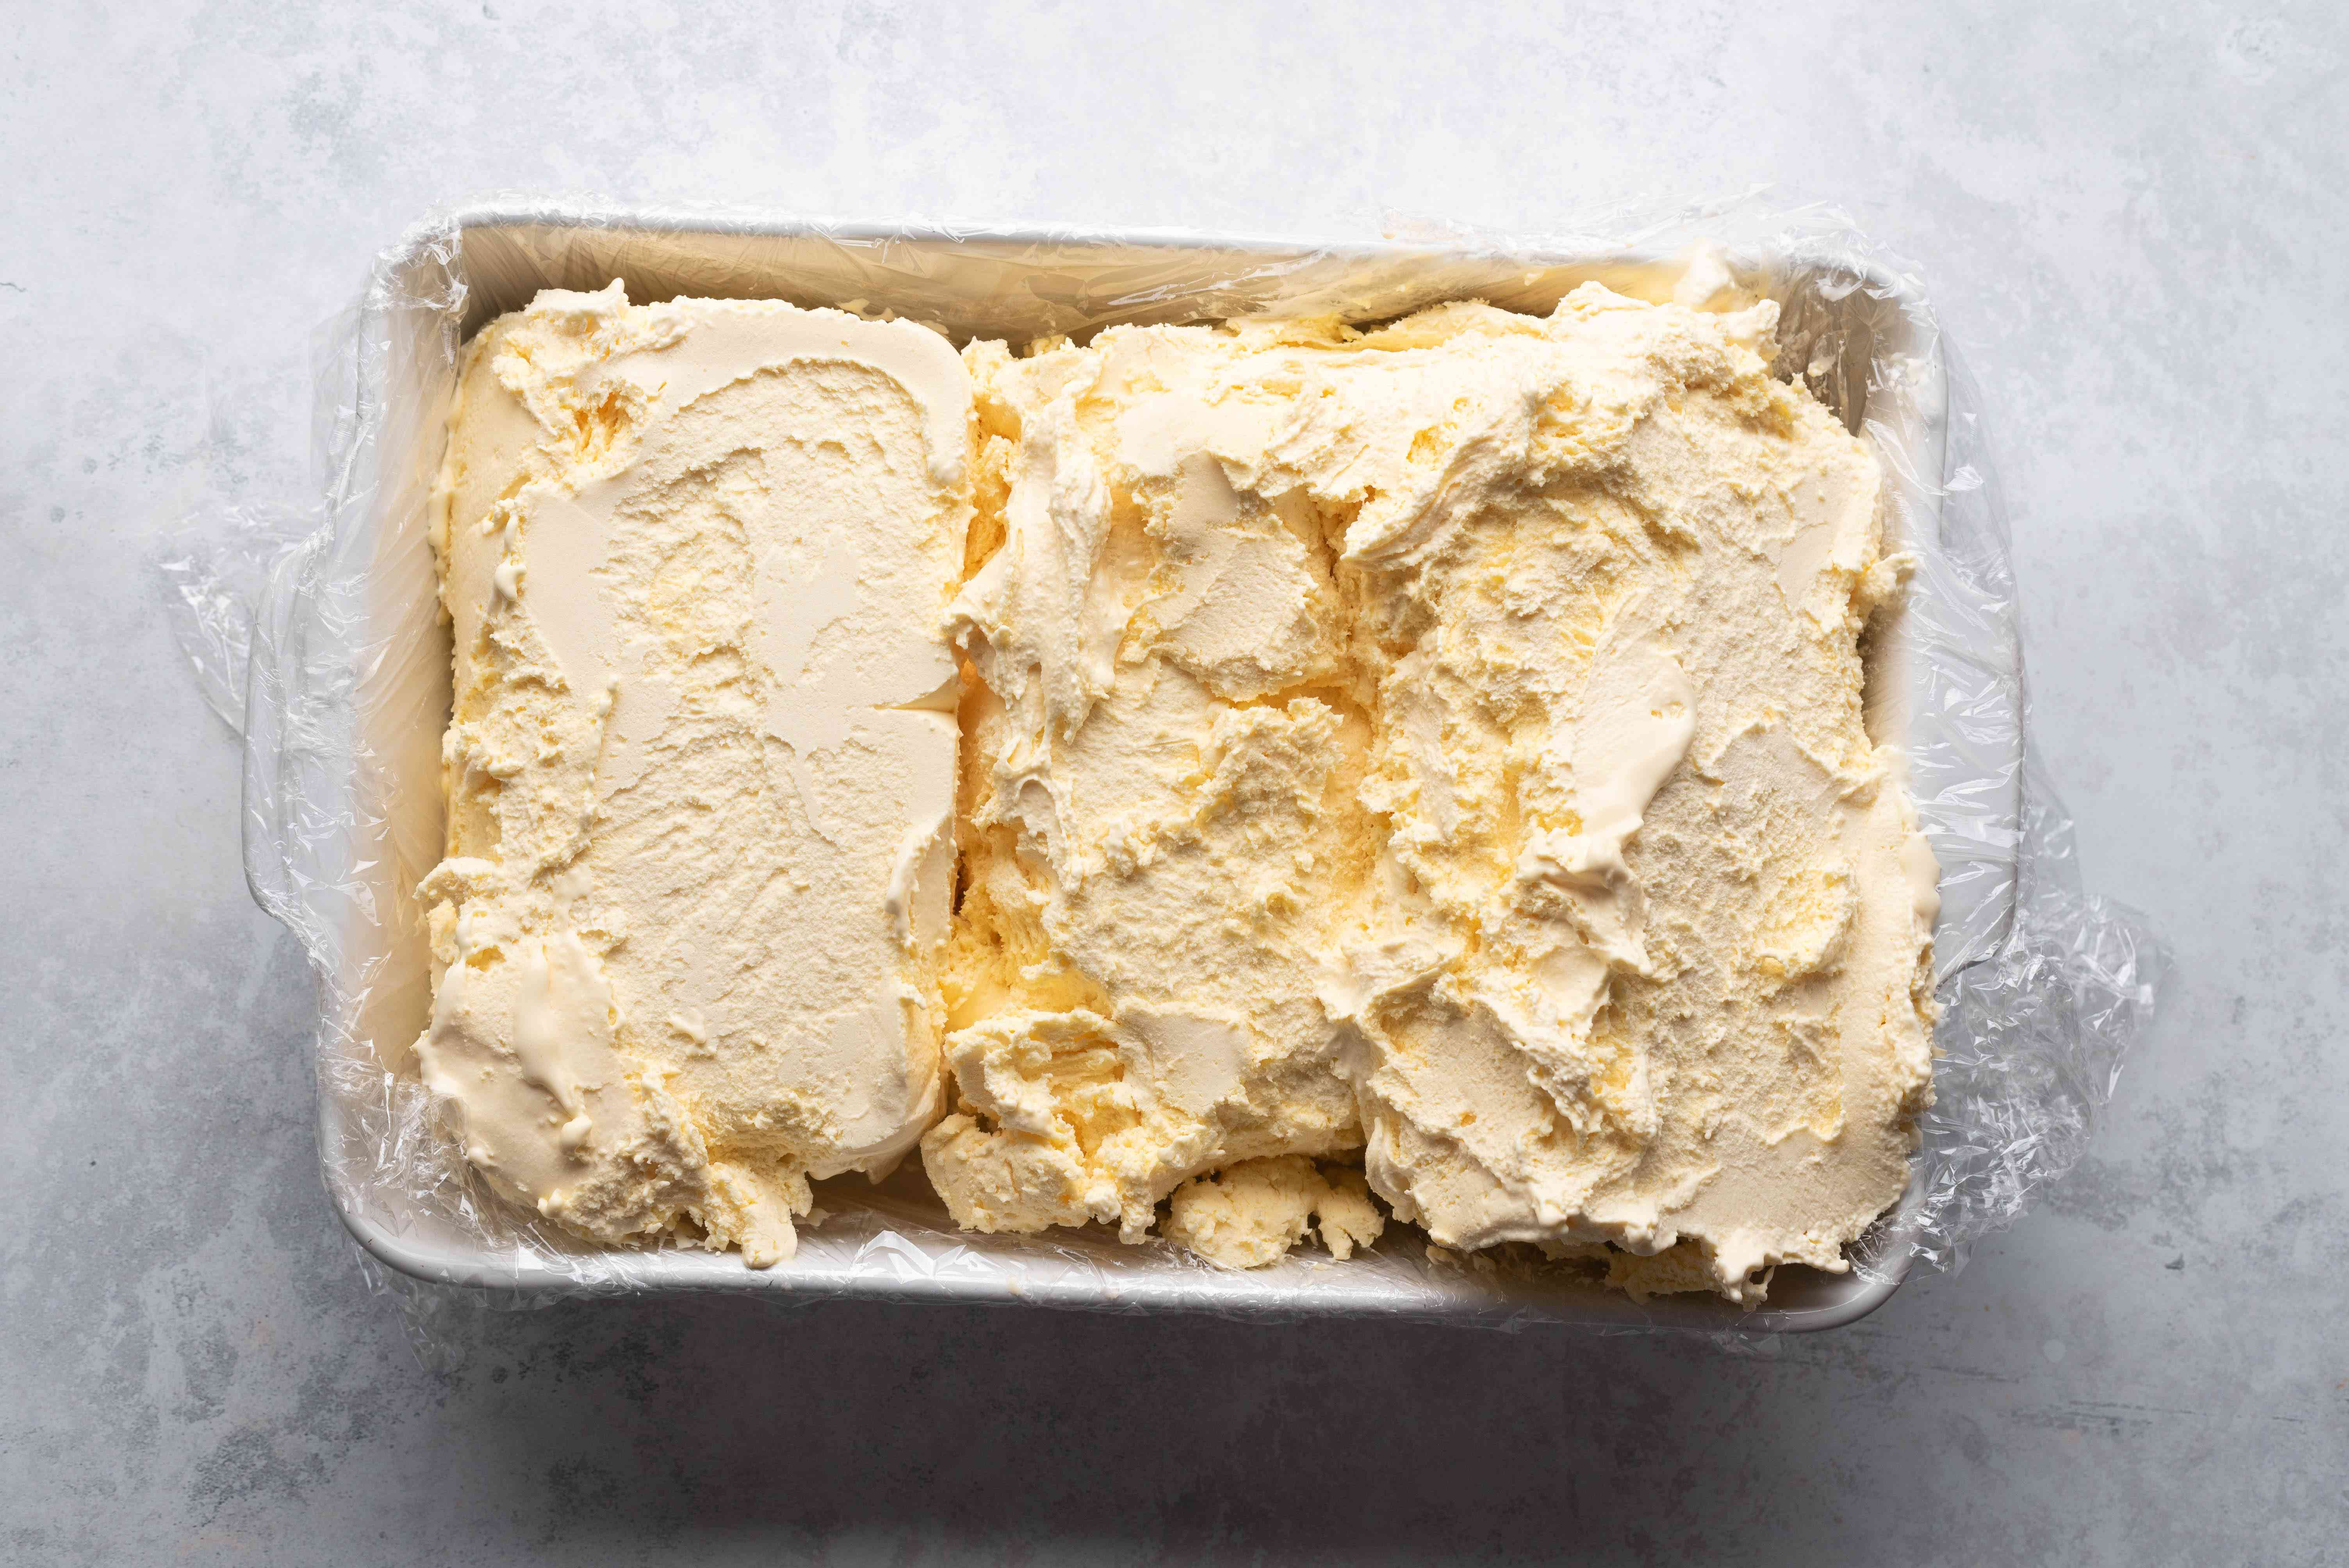 Remove the ice cream from the containers and place the ice cream bricks on their sides in the pan